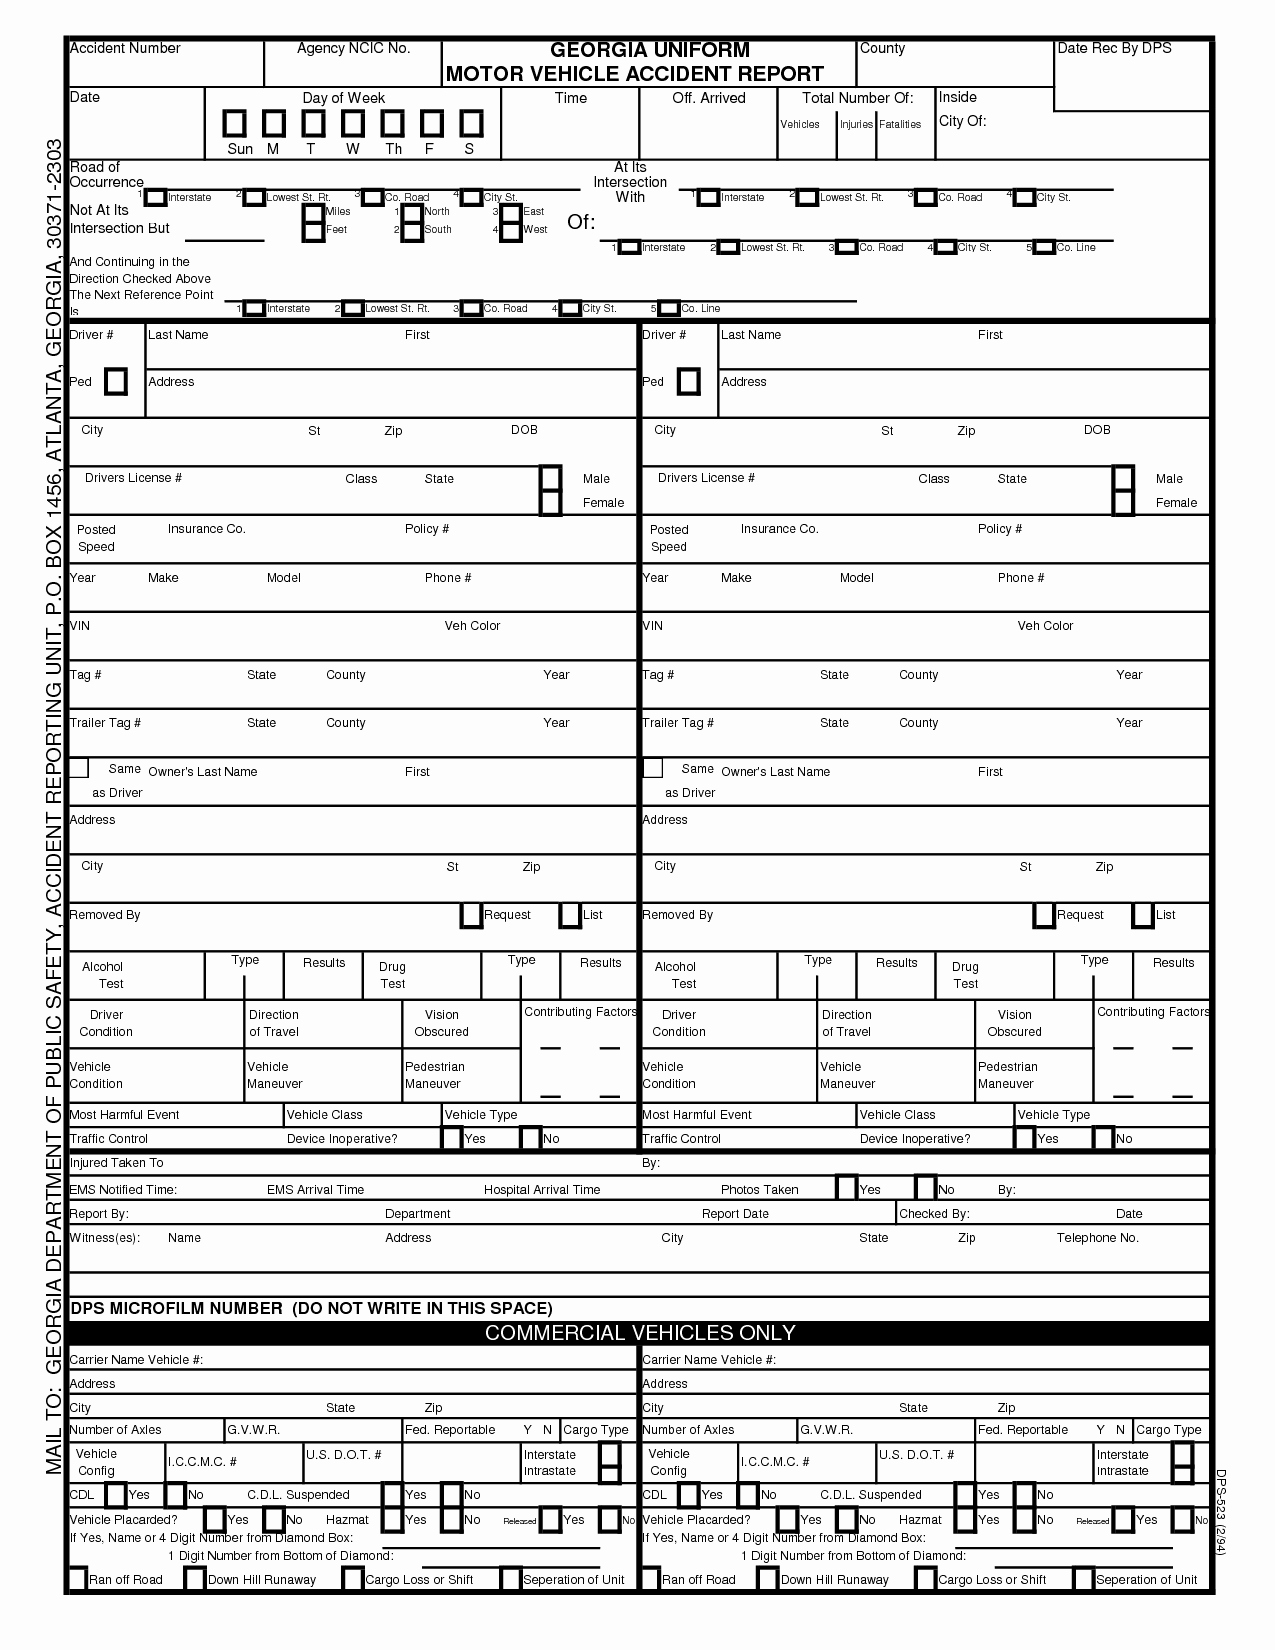 Fake Credit Report Template Luxury Fake Police Report Template 3 Fake Police Report Templatereport Template Document Report within